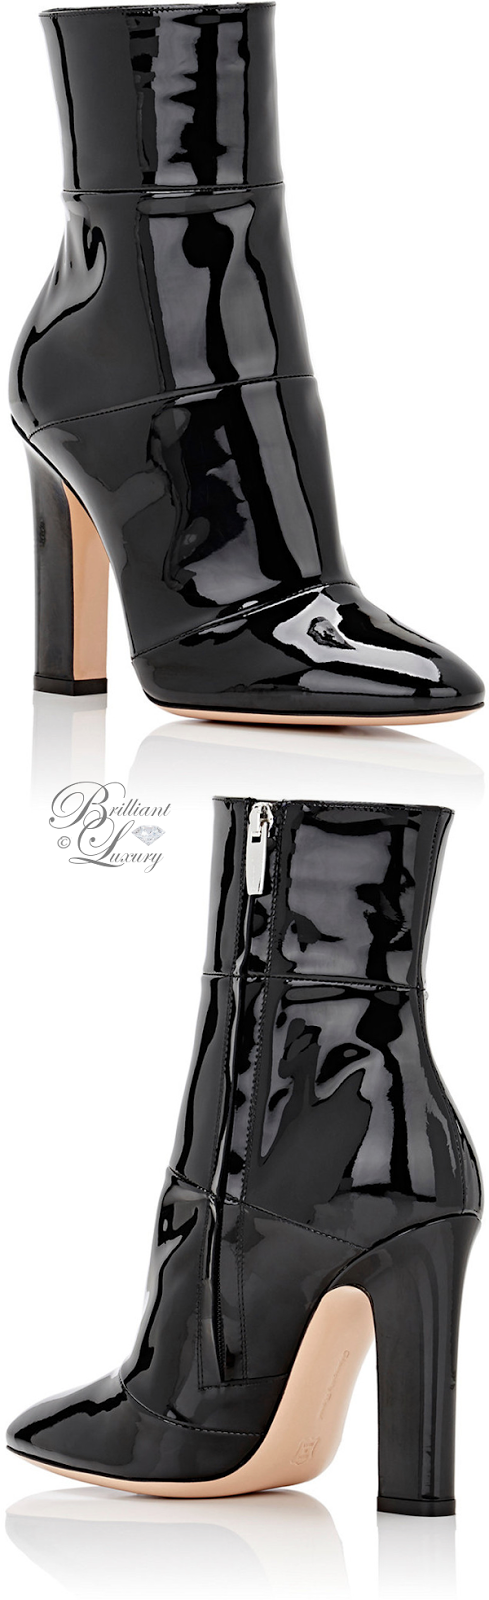 Brilliant Luxury Boot Collection Fall 2016